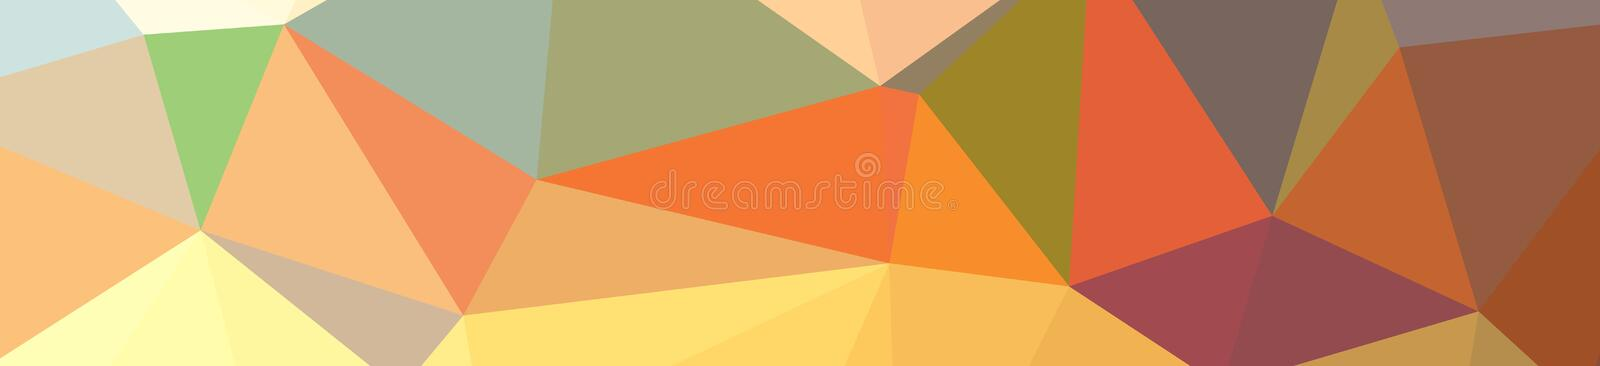 Illustration of abstract Green, Orange, Yellow banner low poly background. Beautiful polygon design pattern royalty free illustration